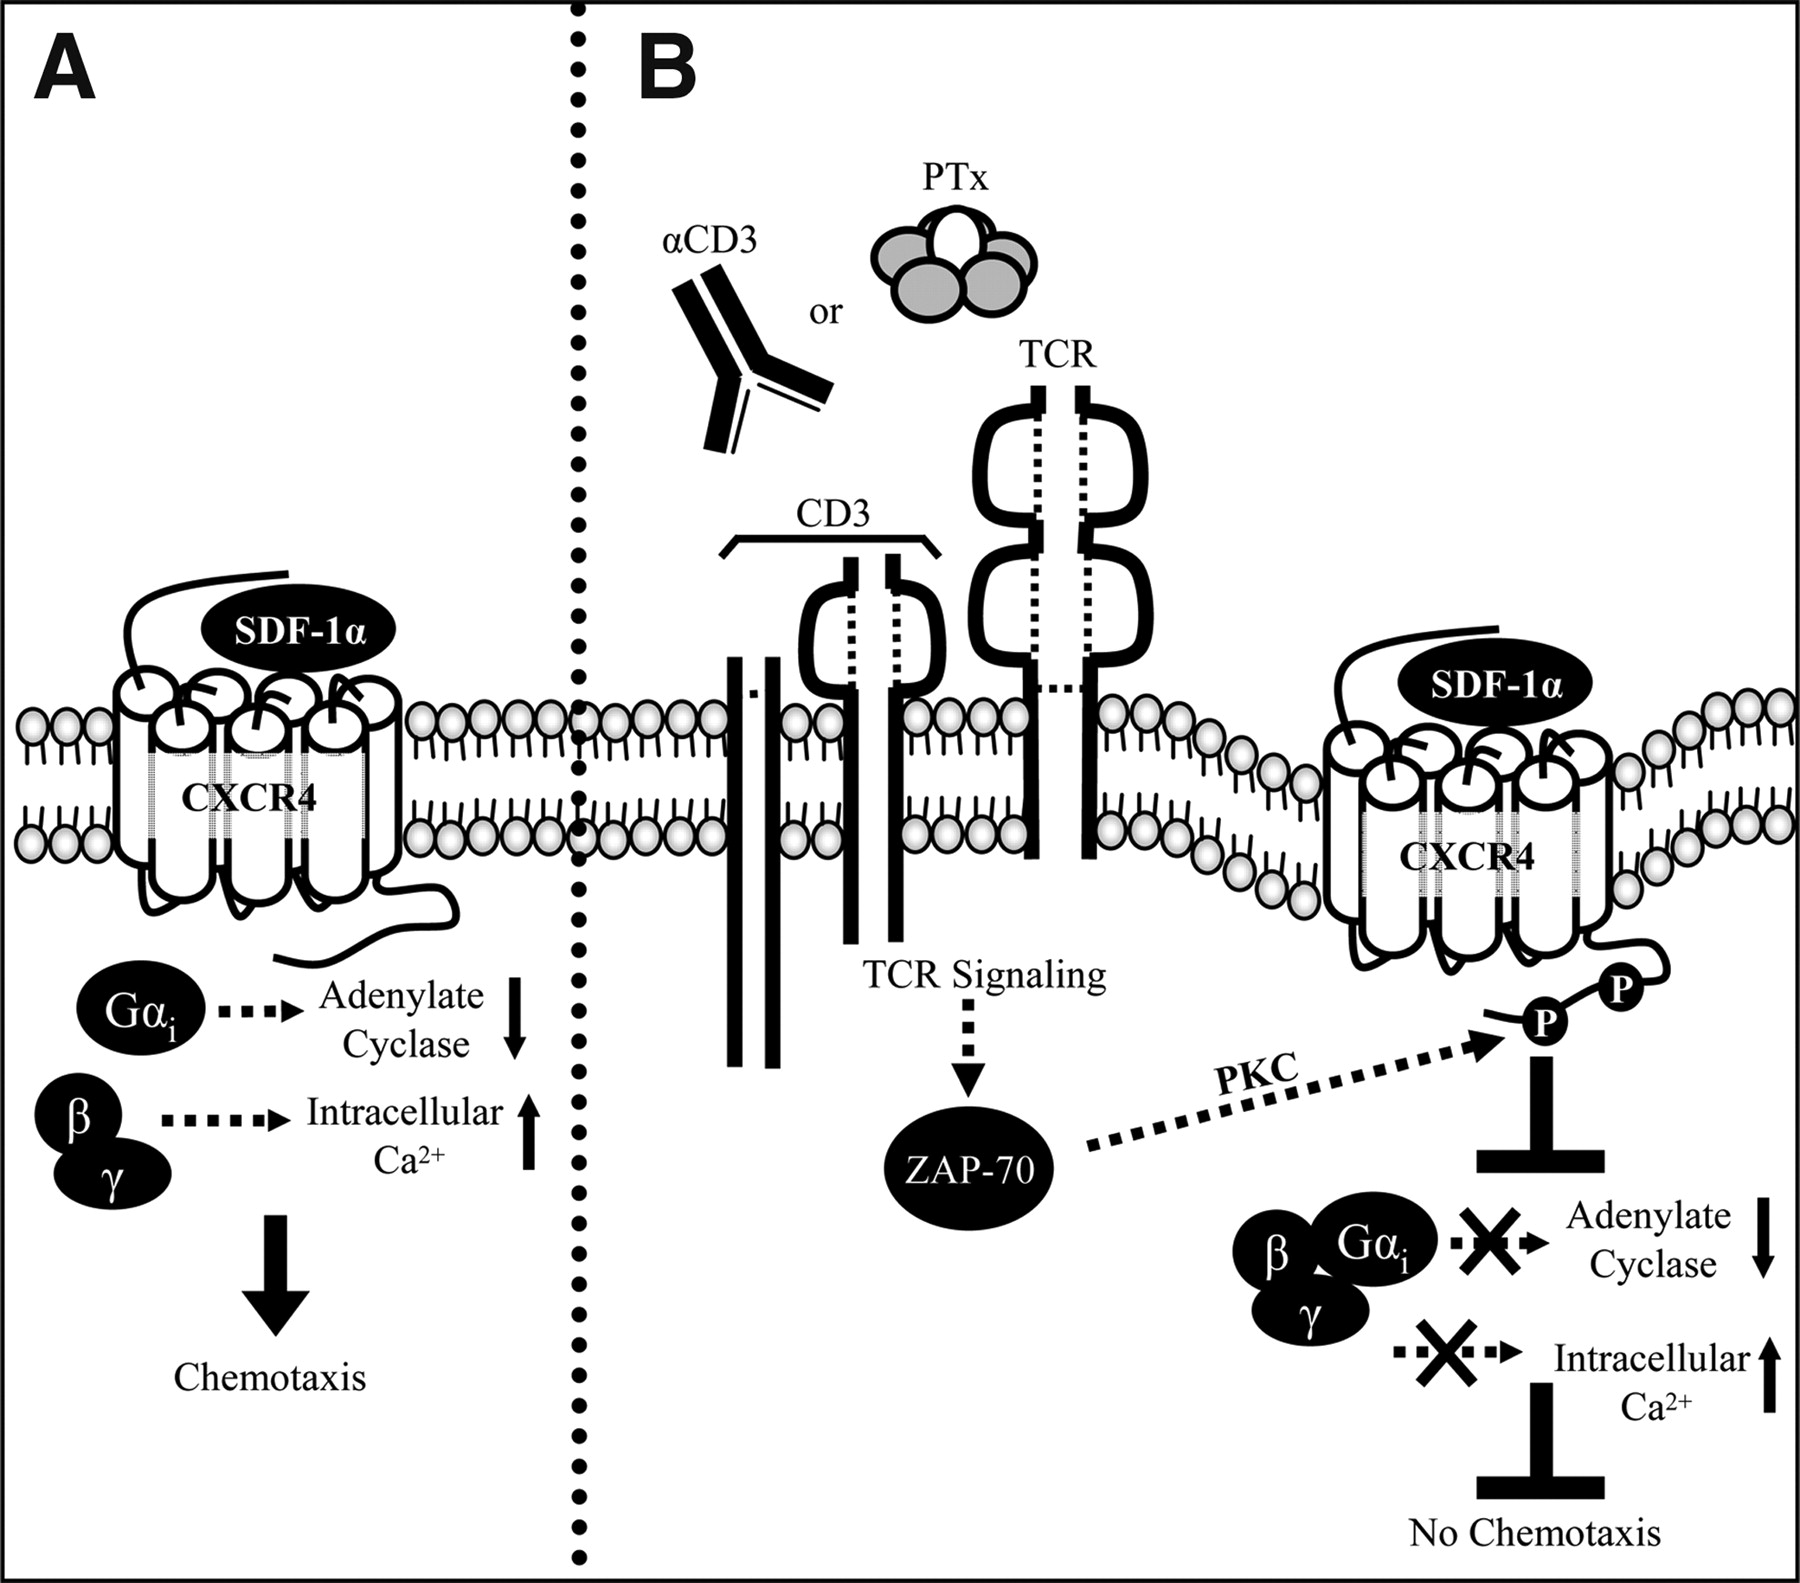 Pertussis Toxin Signals through the TCR to Initiate Cross